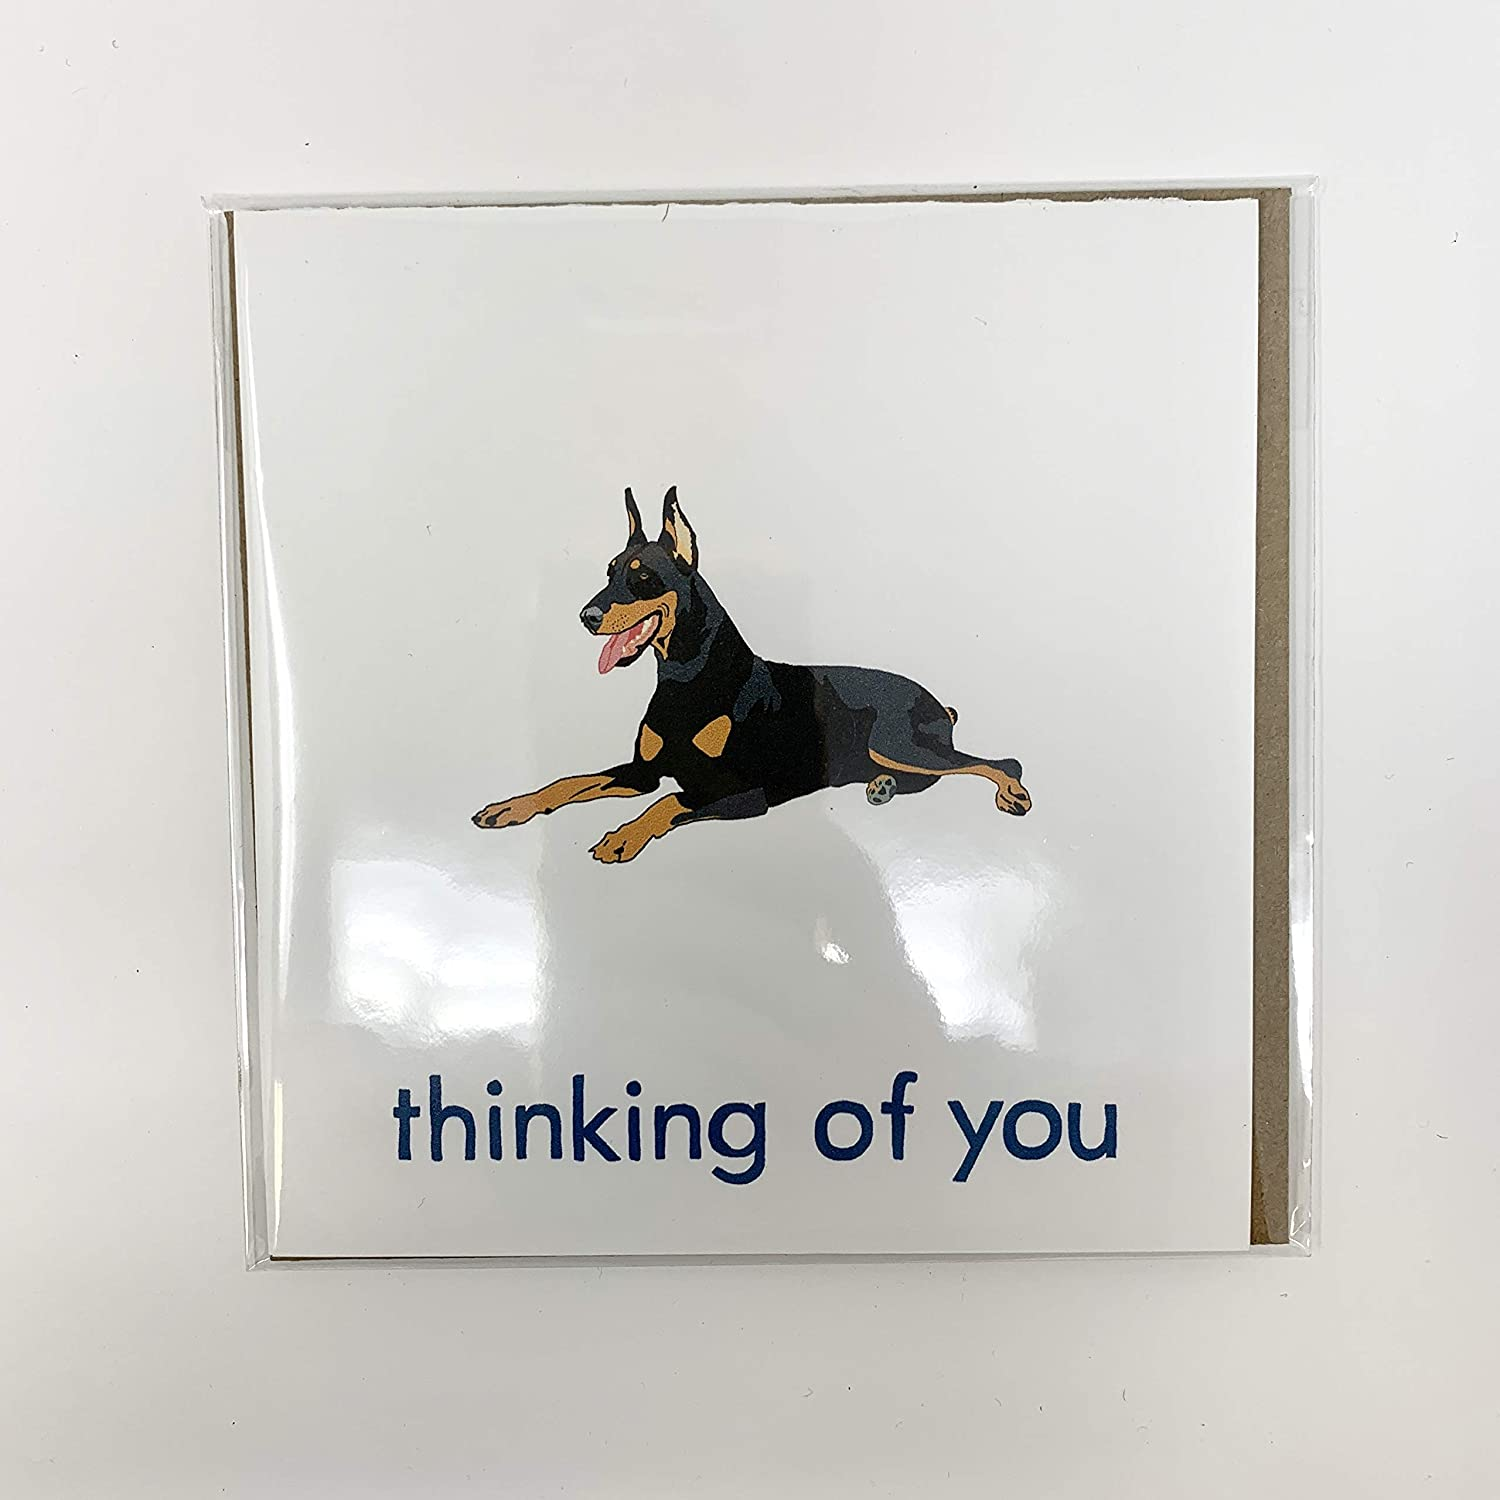 Doberman Pinscher Great Popularity interest Thinking of You Greeting Card